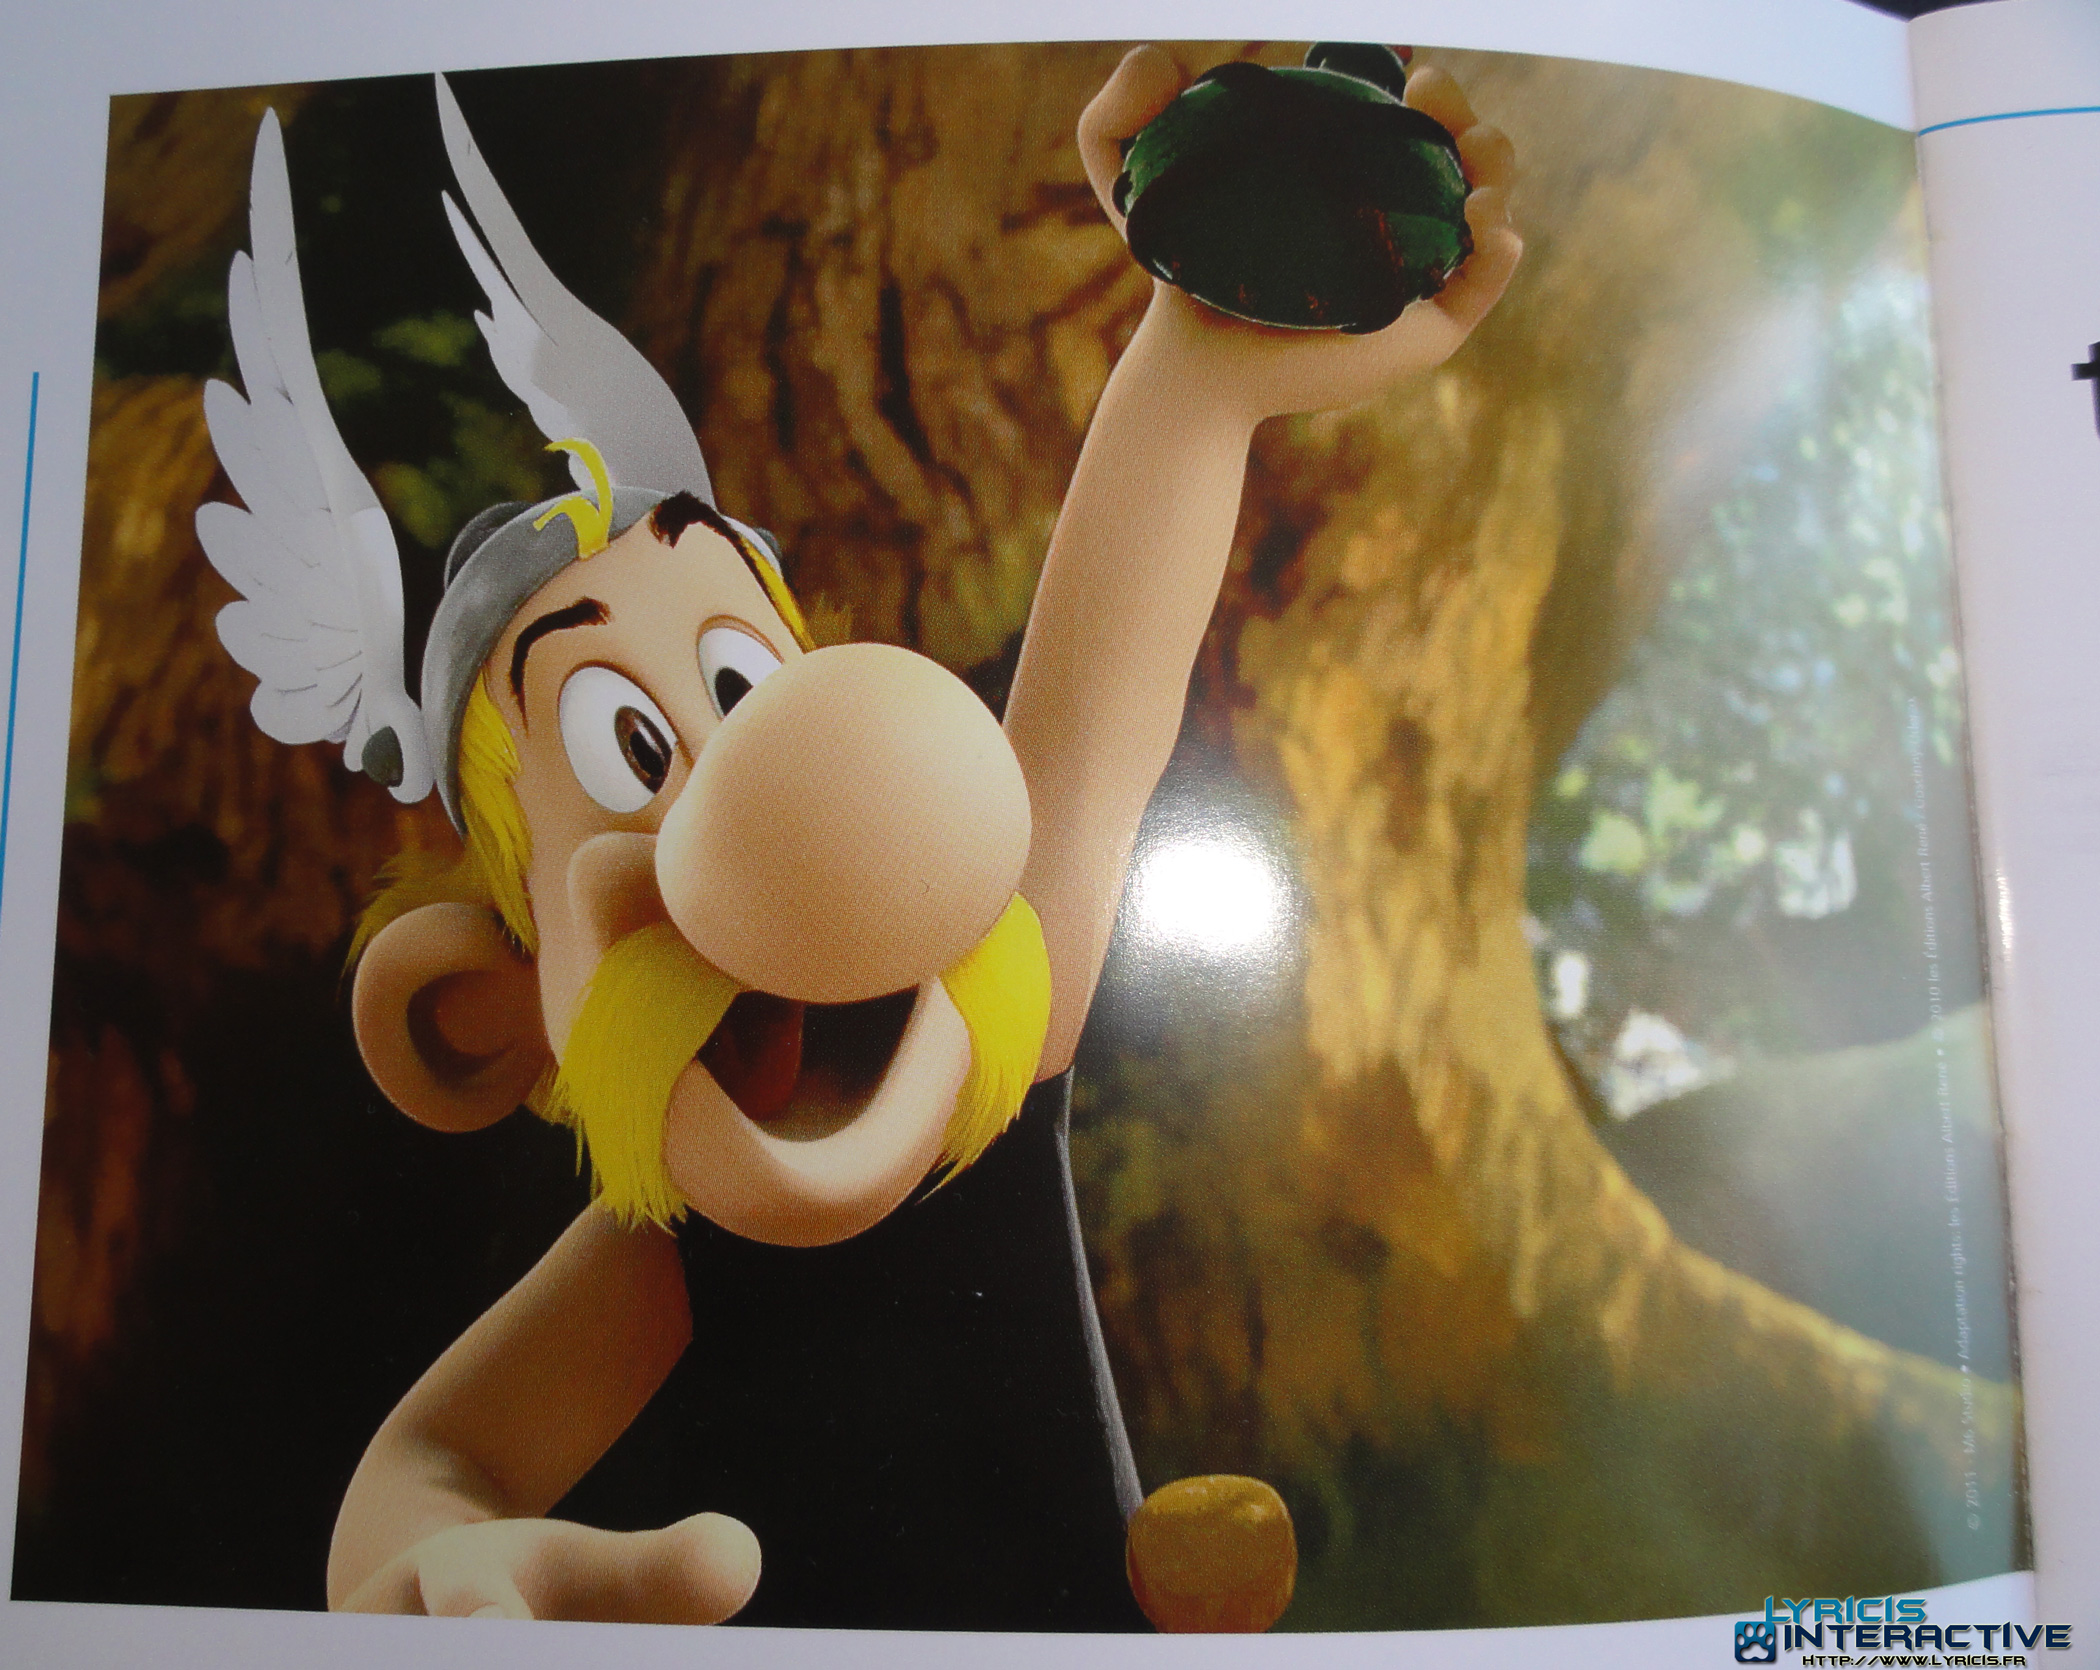 Astérix-Le-domaine-des-Dieux-Astérix-The-Land-of-the-Gods-Photo-Lyricis02